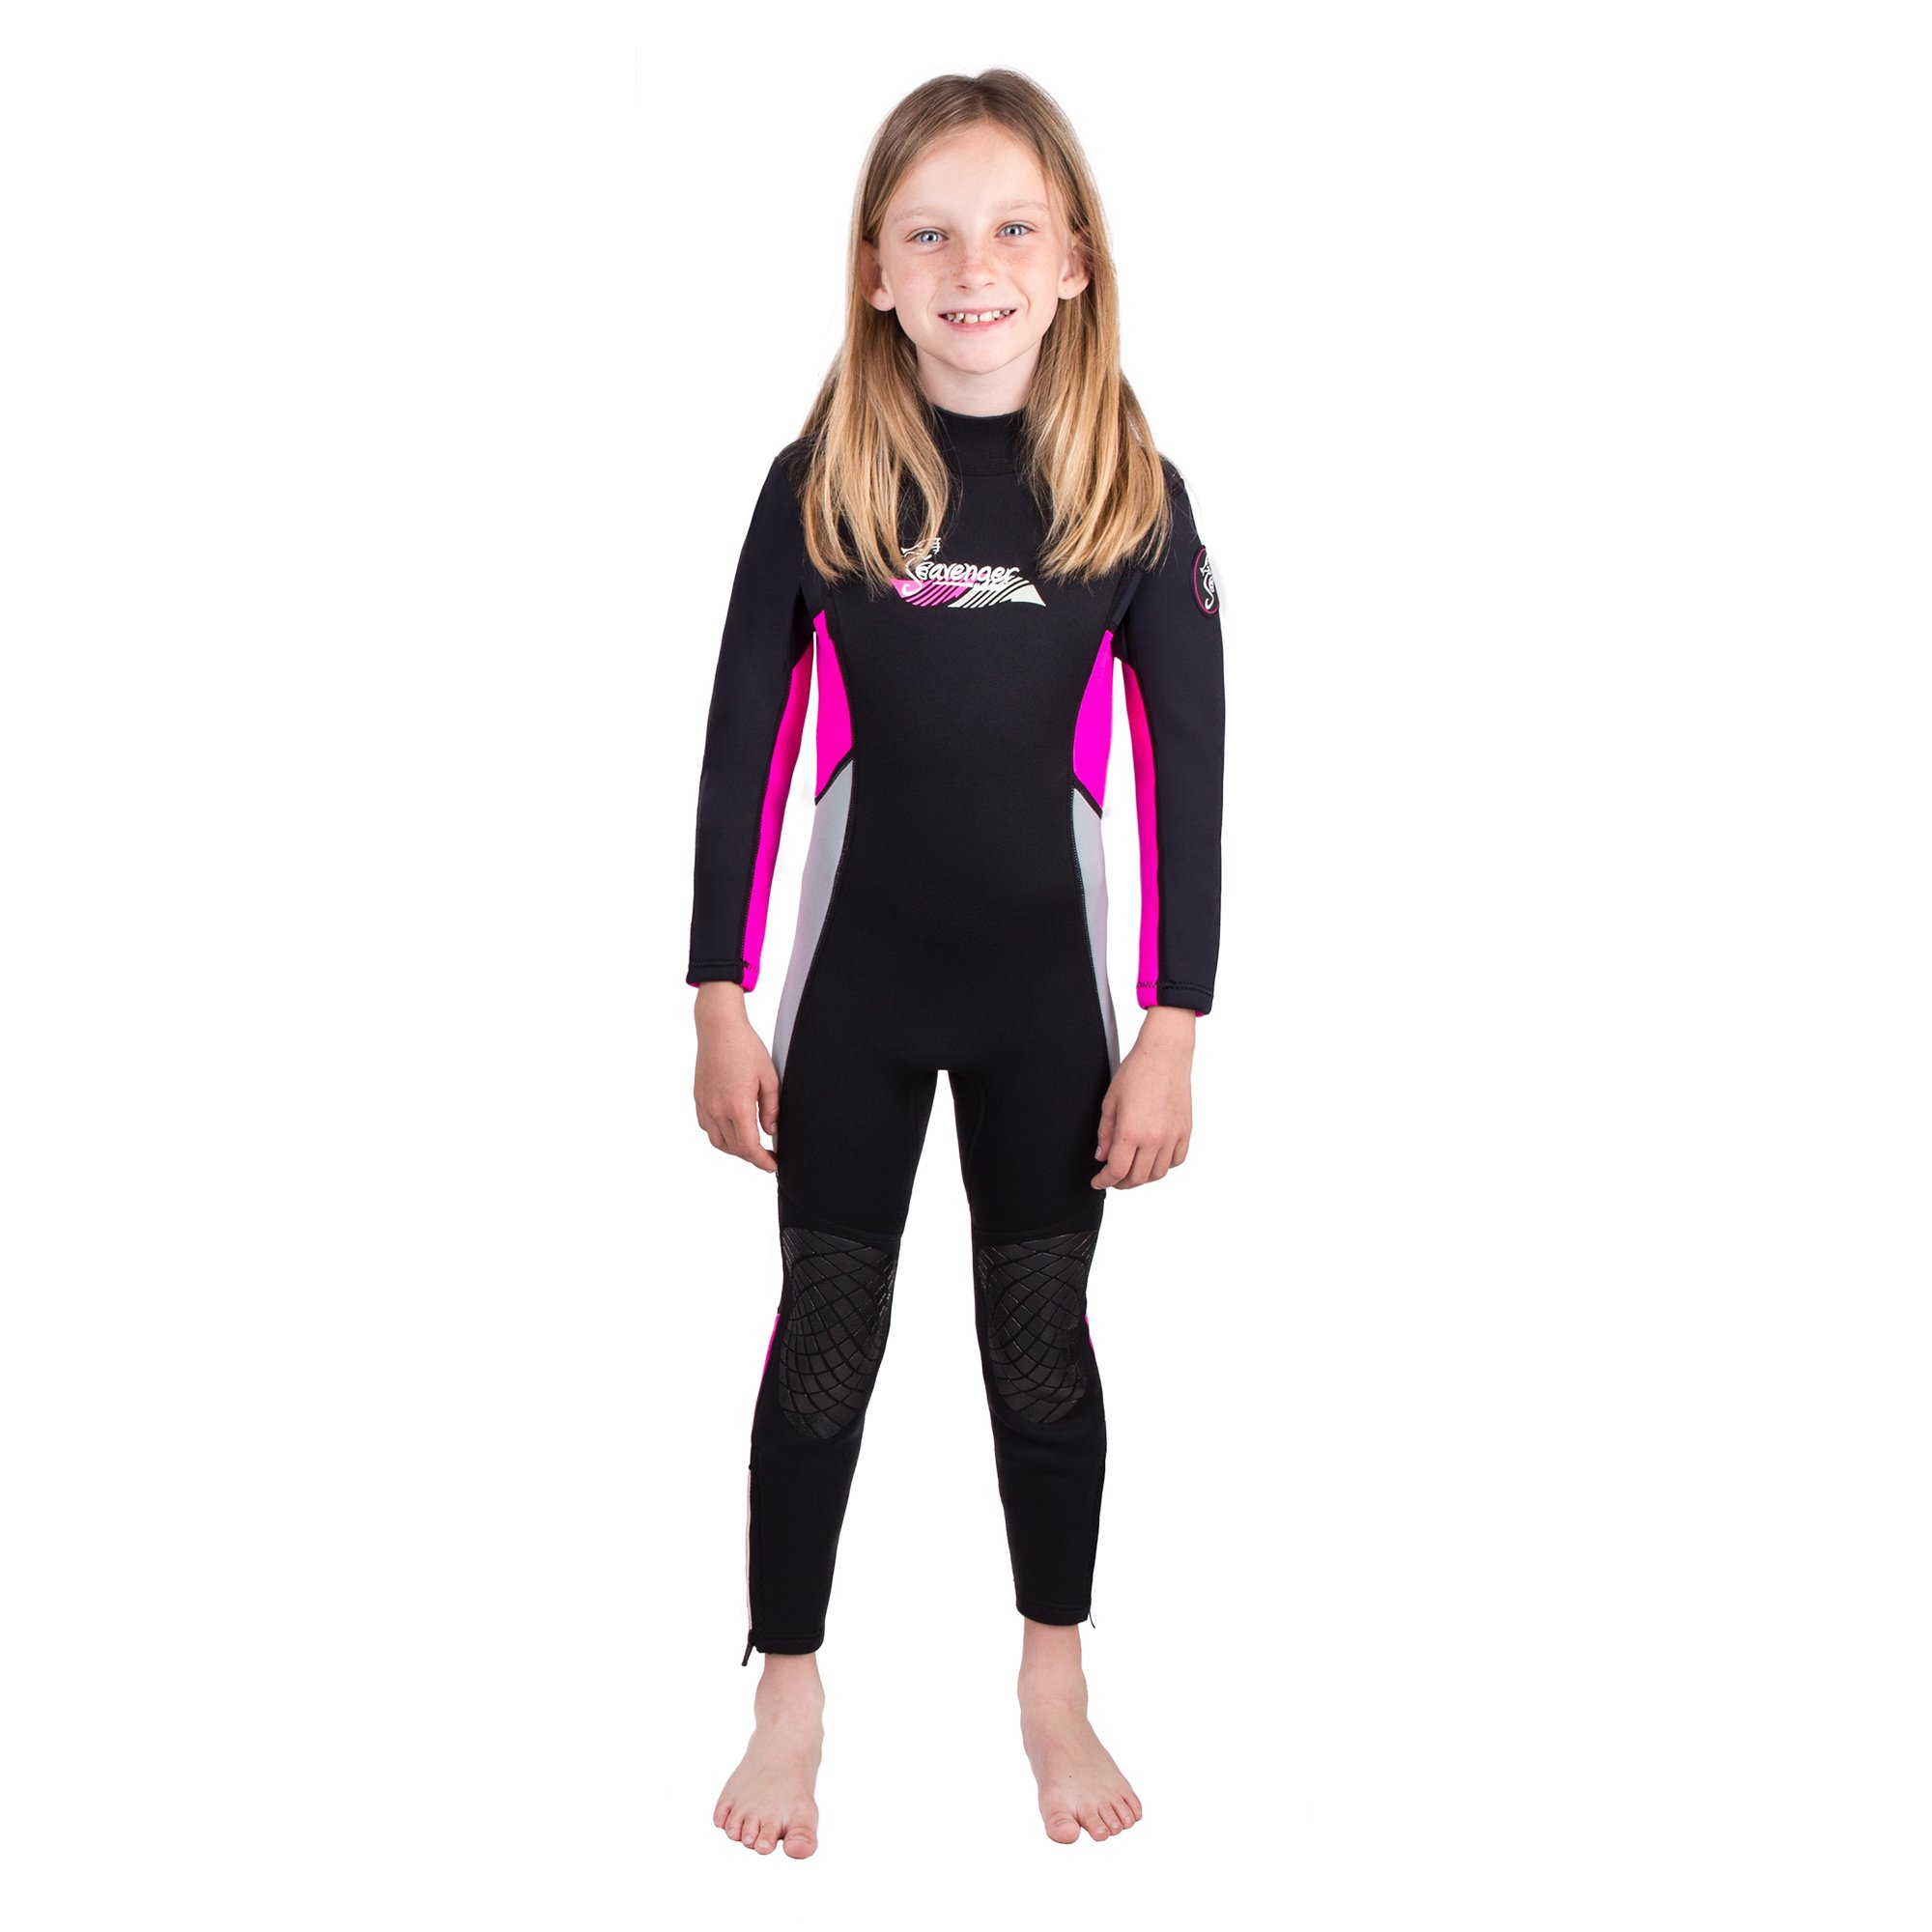 Seavenger Scout 3mm Kids Wetsuit   Full Body Neoprene Suit for Snorkeling, Swimming, Diving (Coral Pink, 4)